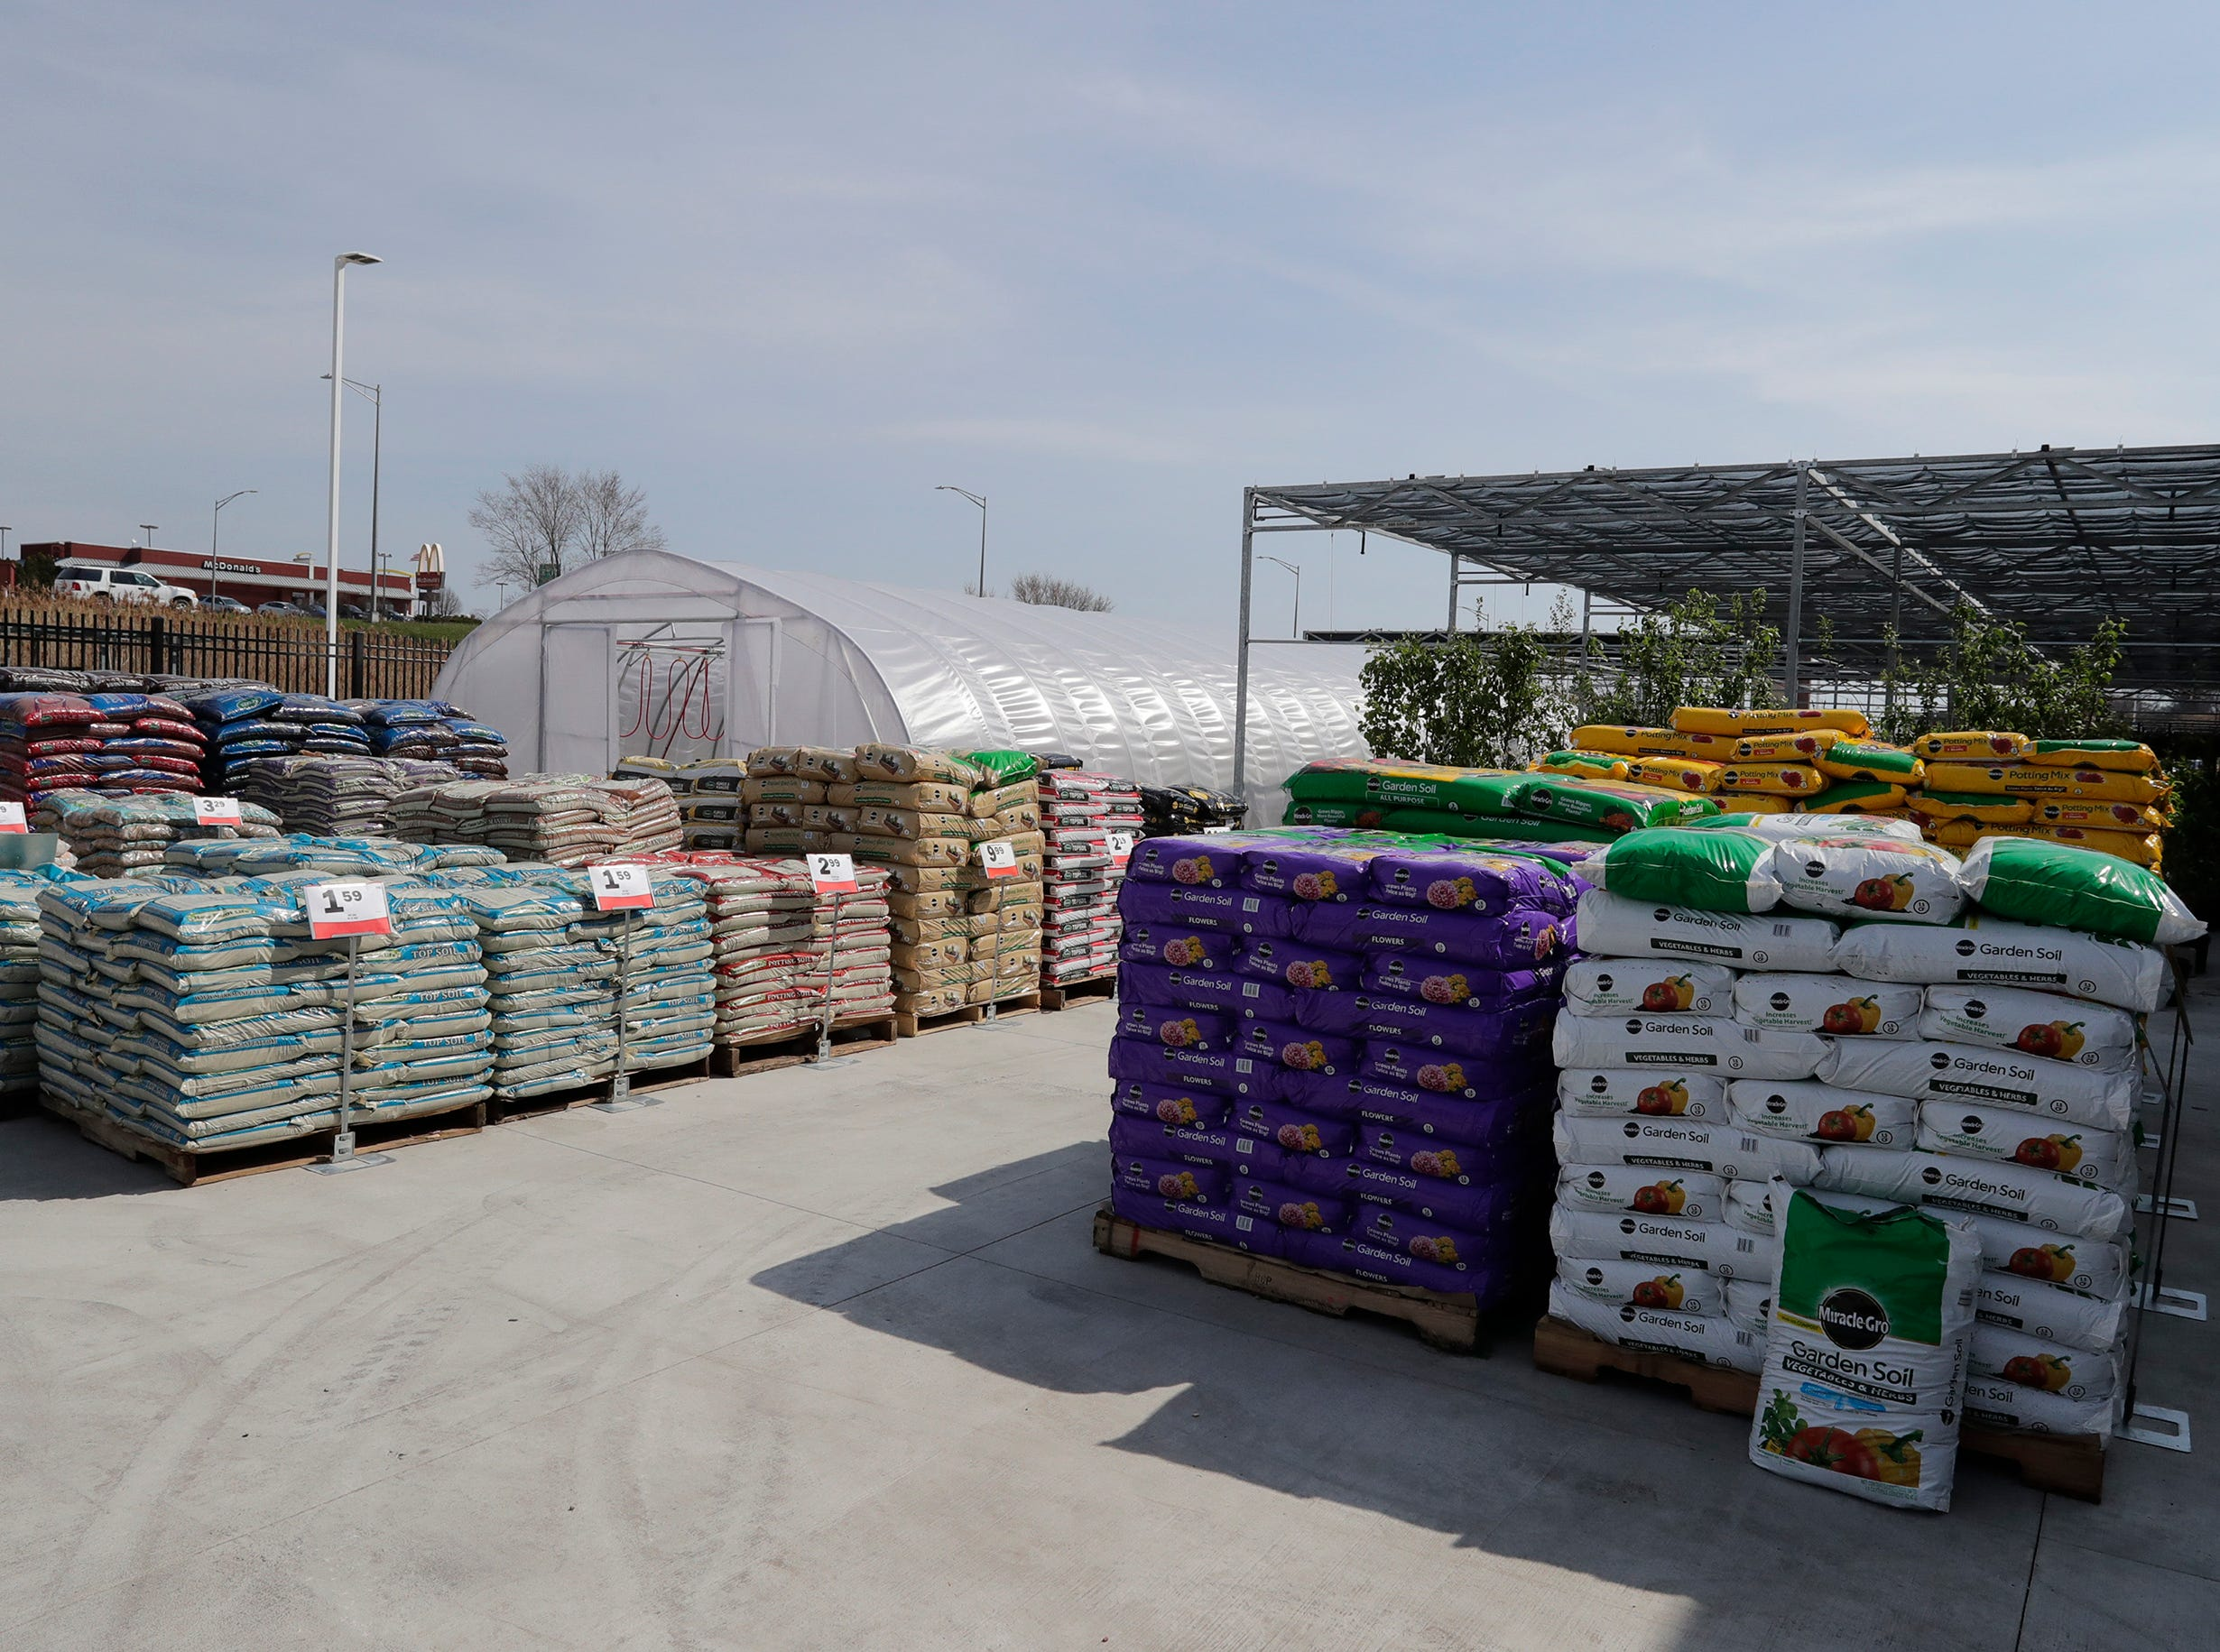 The garden area at Meijer, Thursday April 25, 2019, in Sheboygan, Wis. The 155,000-square-foot supercenter has 300 employees on opening day.